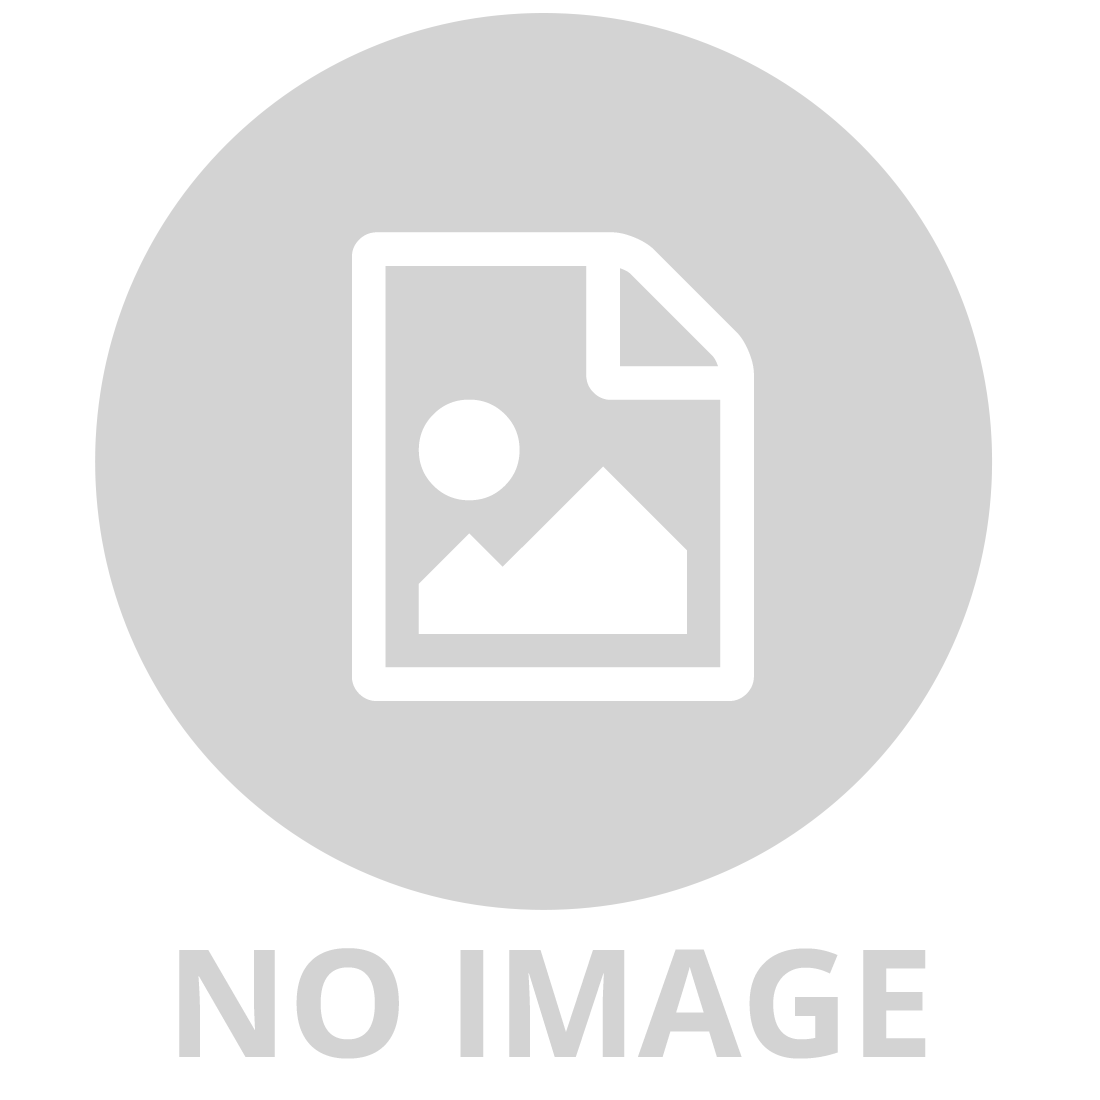 DIE CAST METAL CAP GUN WITH BADGE